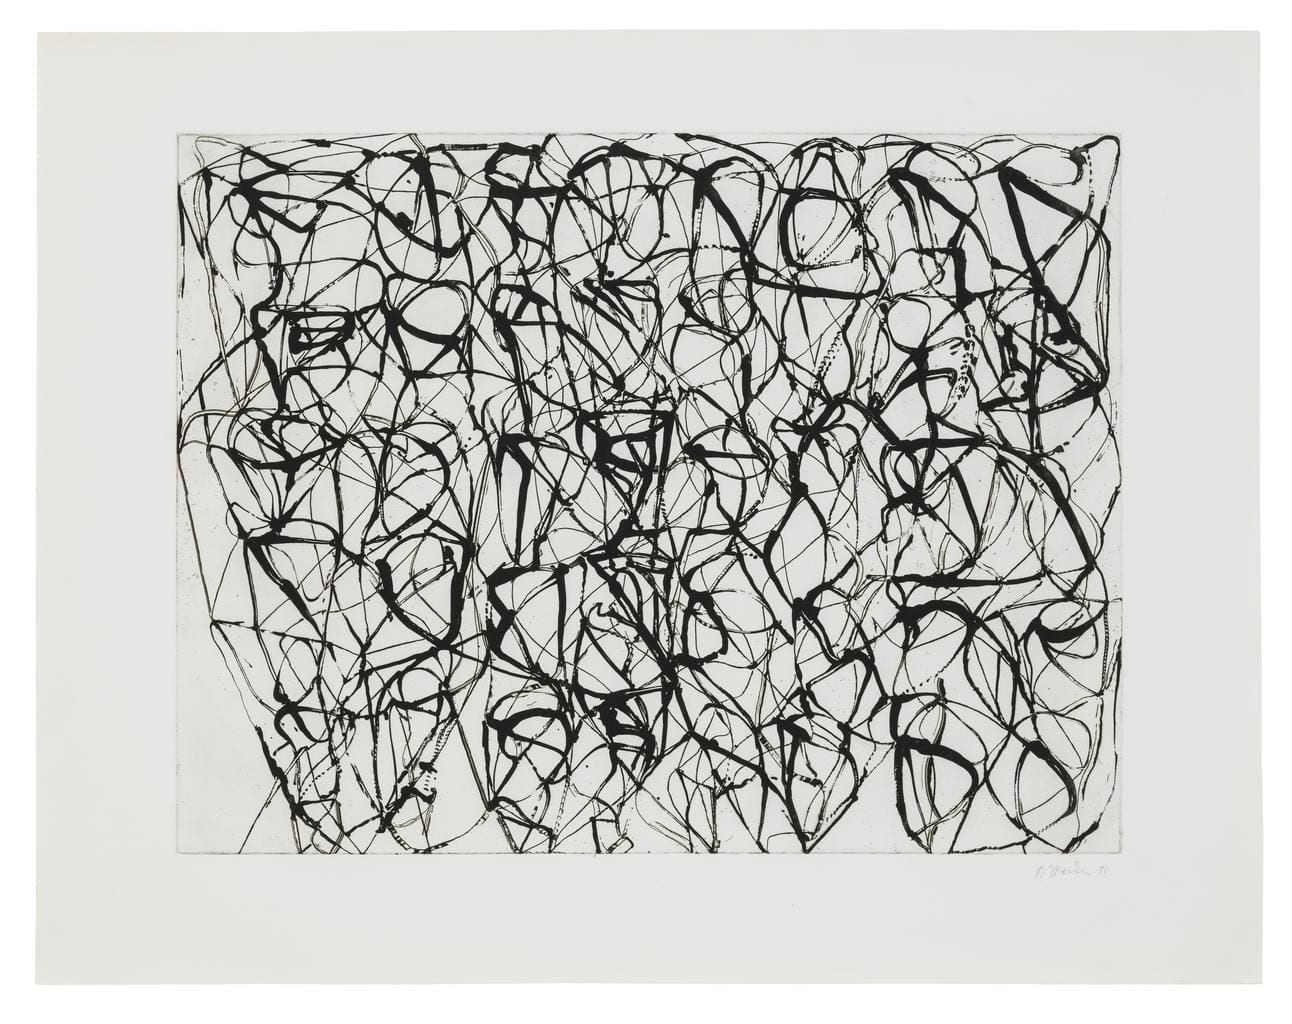 Zen Studies 1-6: Plate 4 (Early State), 1990